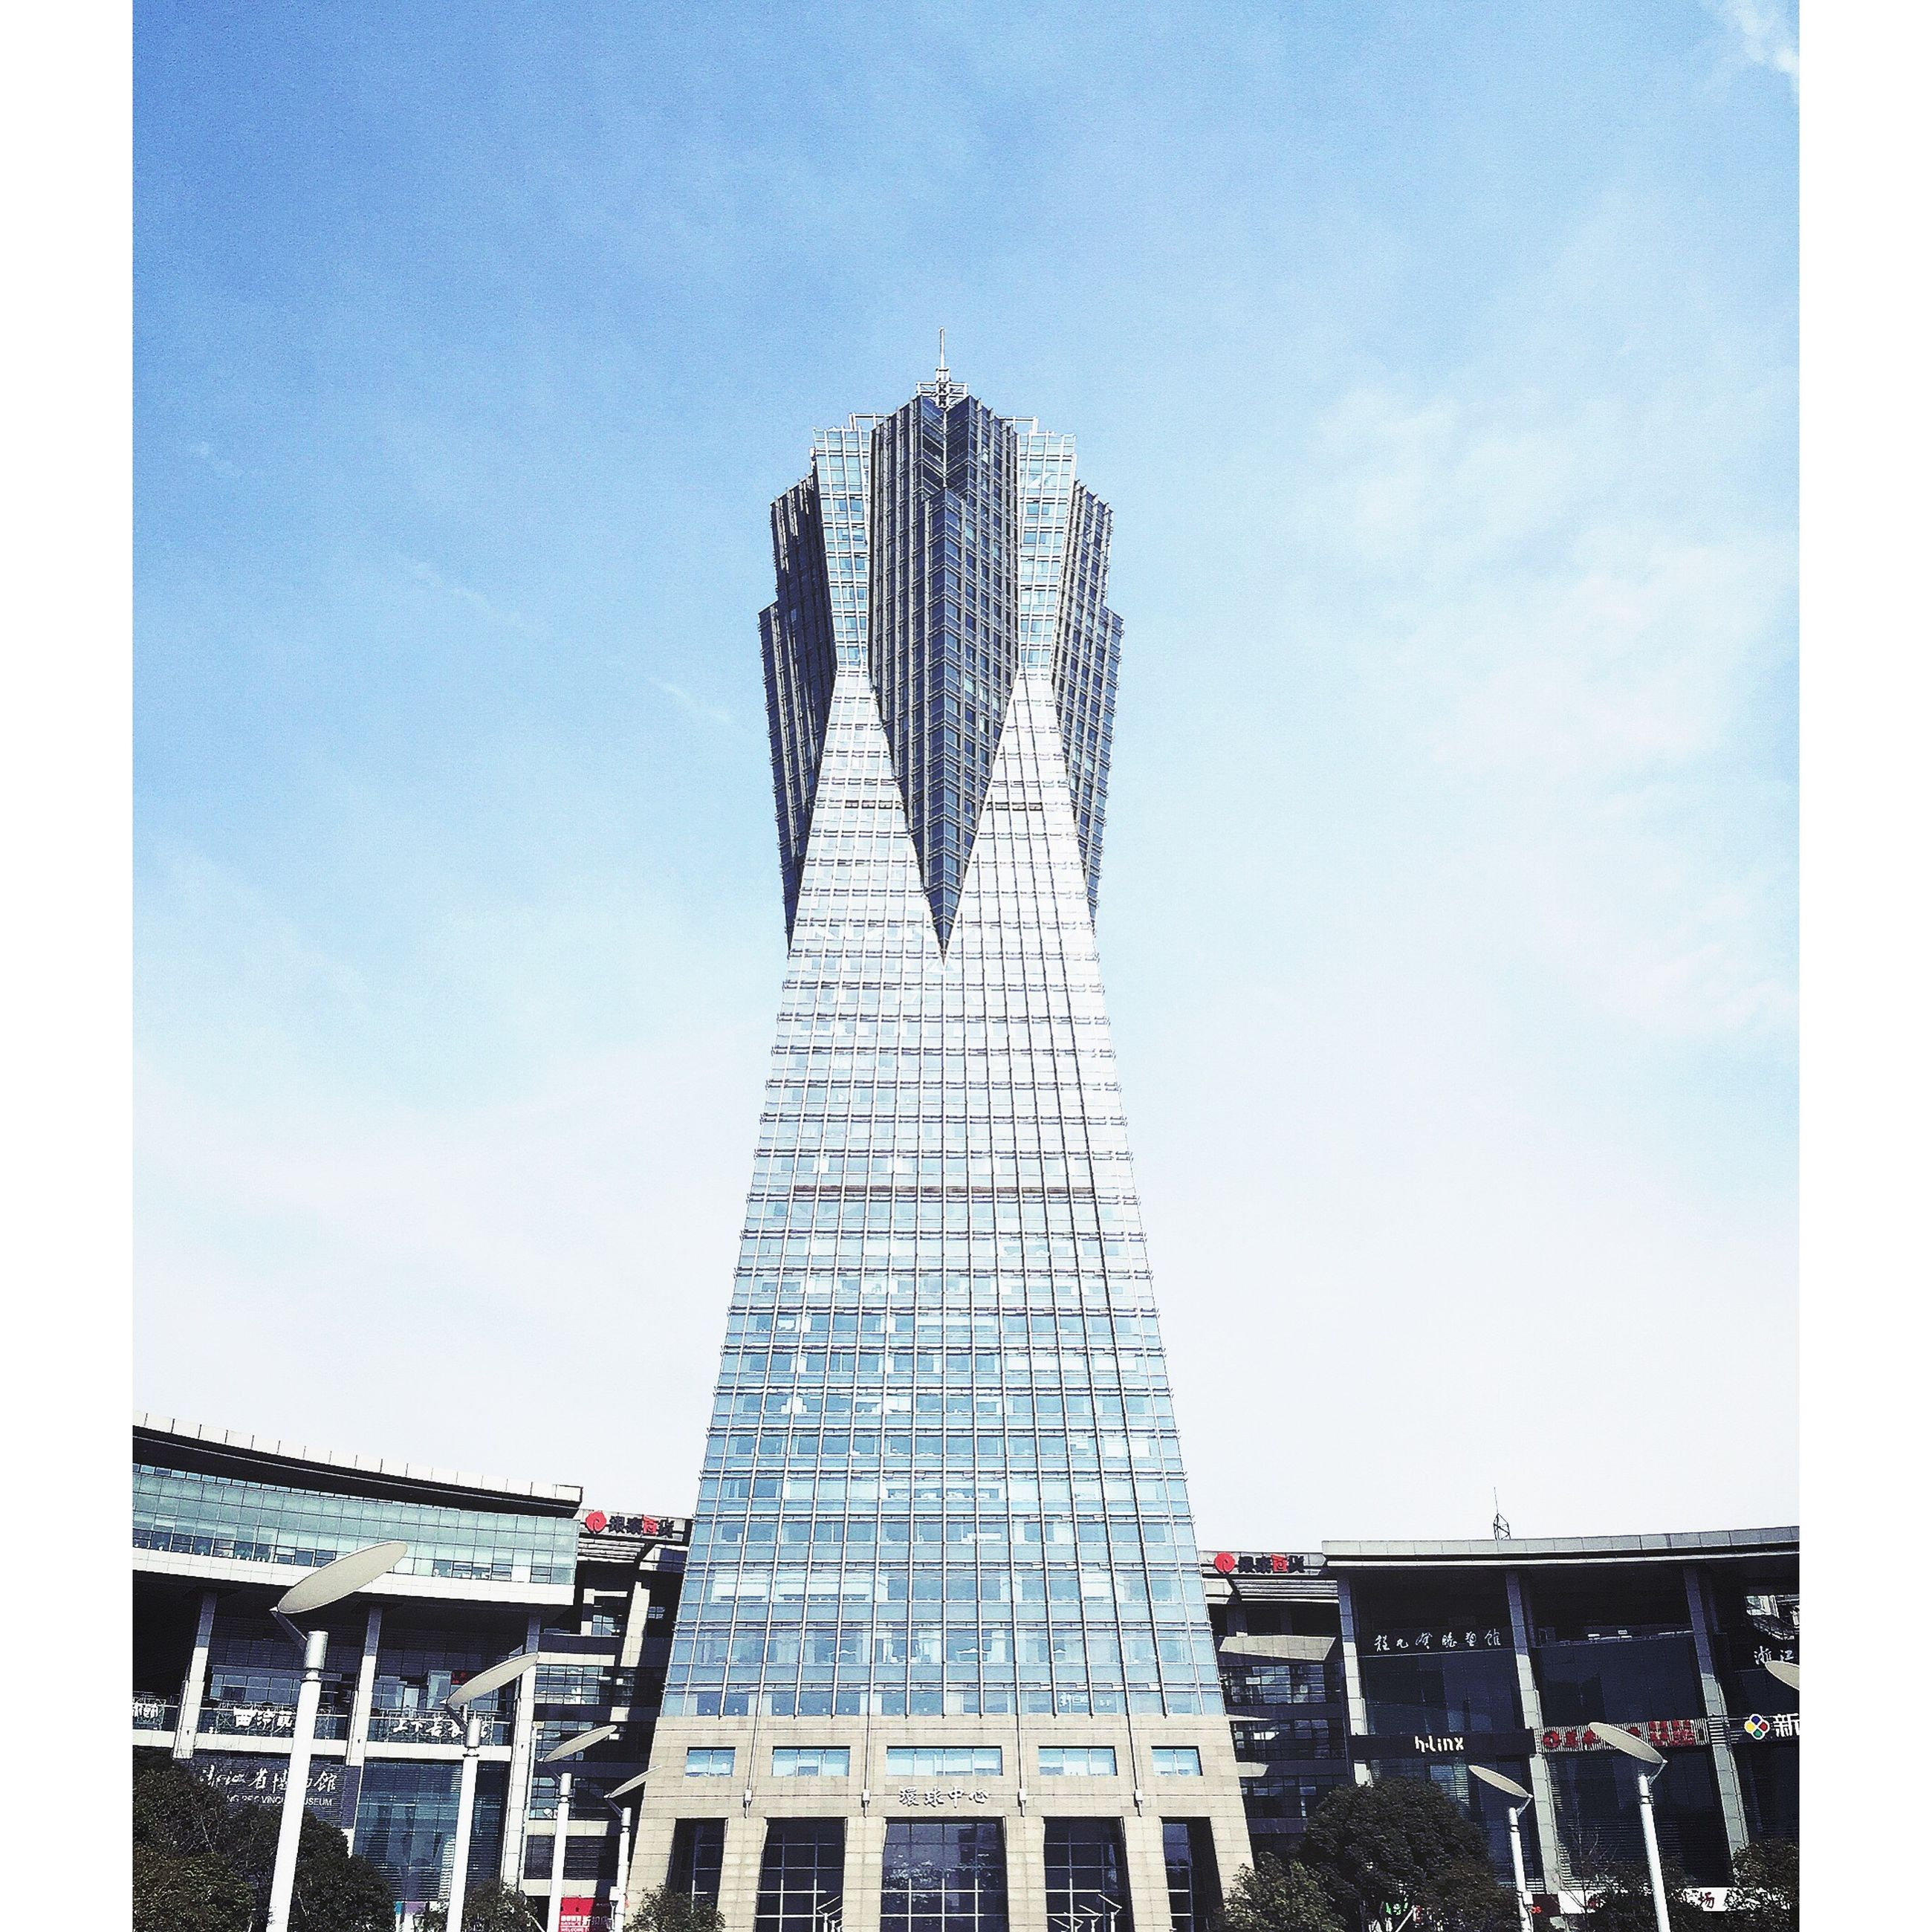 low angle view, built structure, architecture, building exterior, tall - high, sky, tower, modern, blue, city, day, building, outdoors, office building, skyscraper, tall, clear sky, development, auto post production filter, construction site